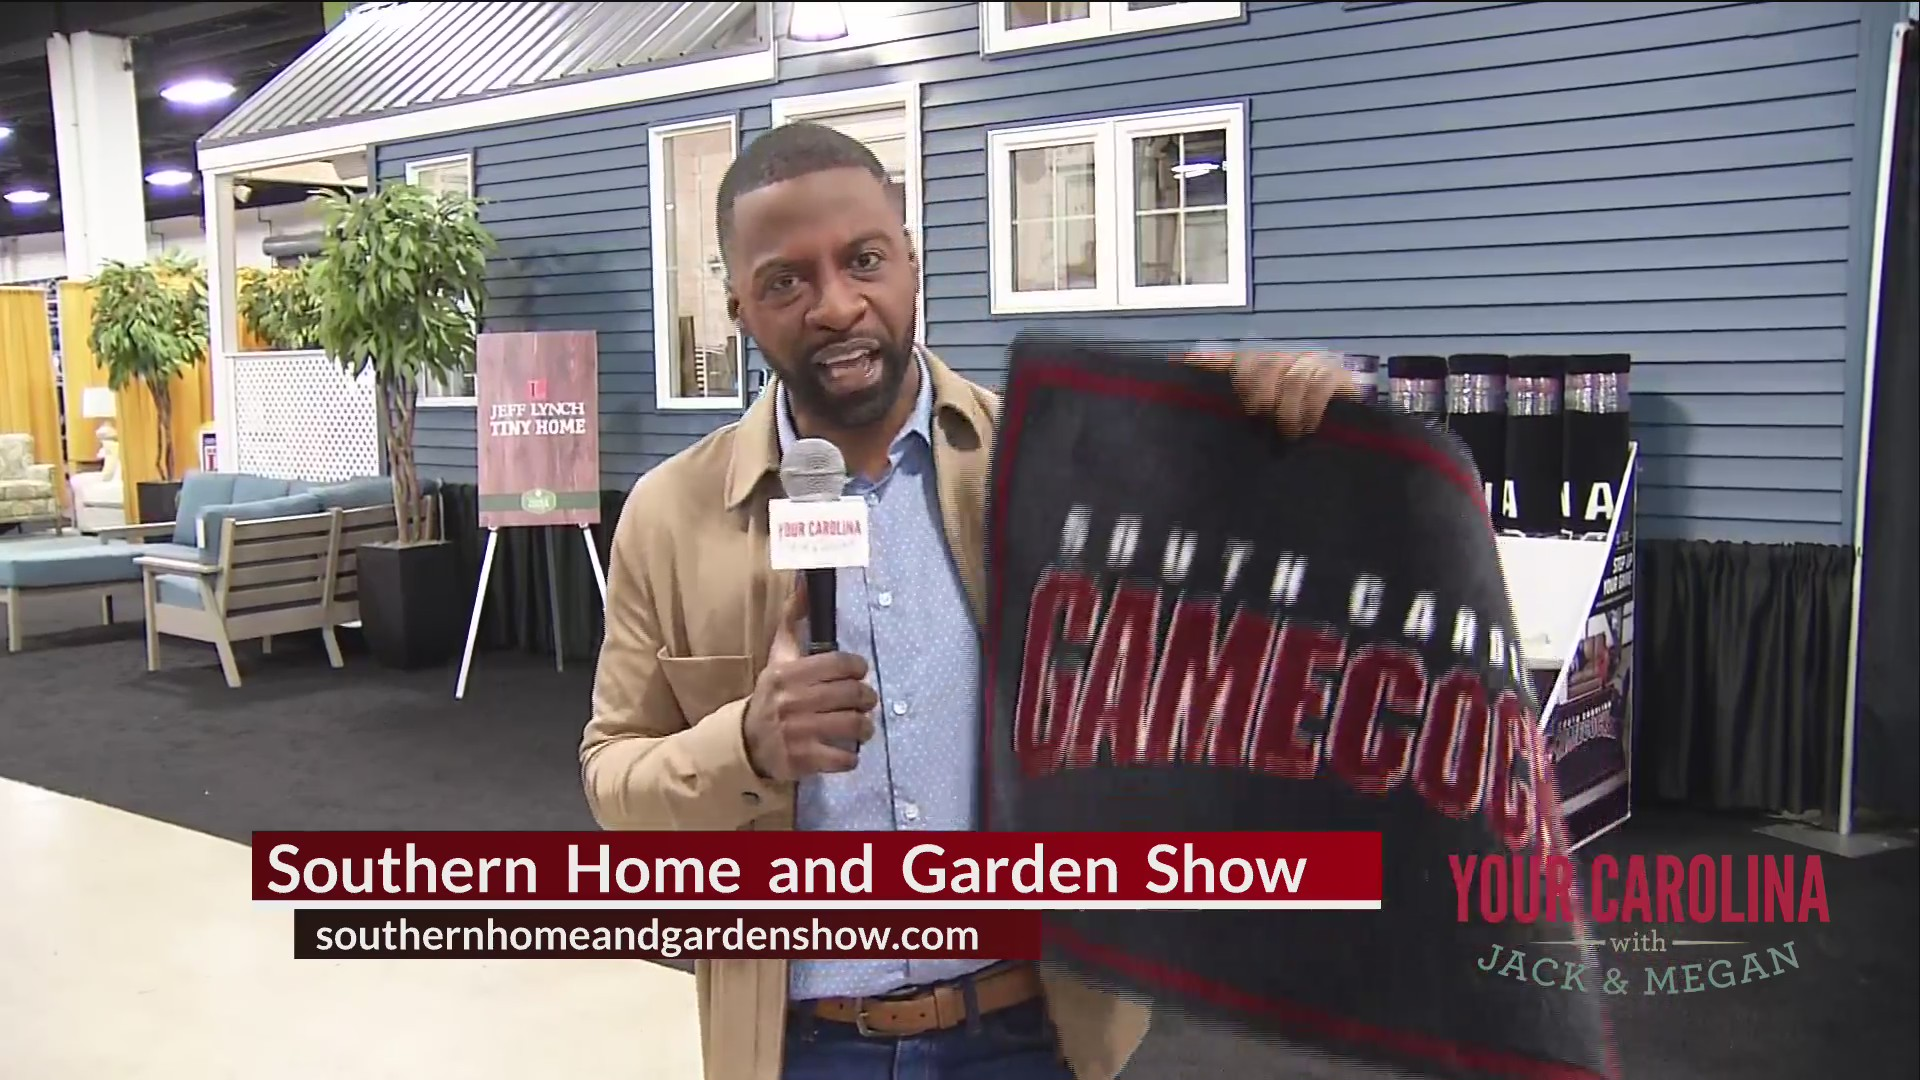 Jamarcus Is Live From The Southern Home and Garden Show At The Greenville Convention Center